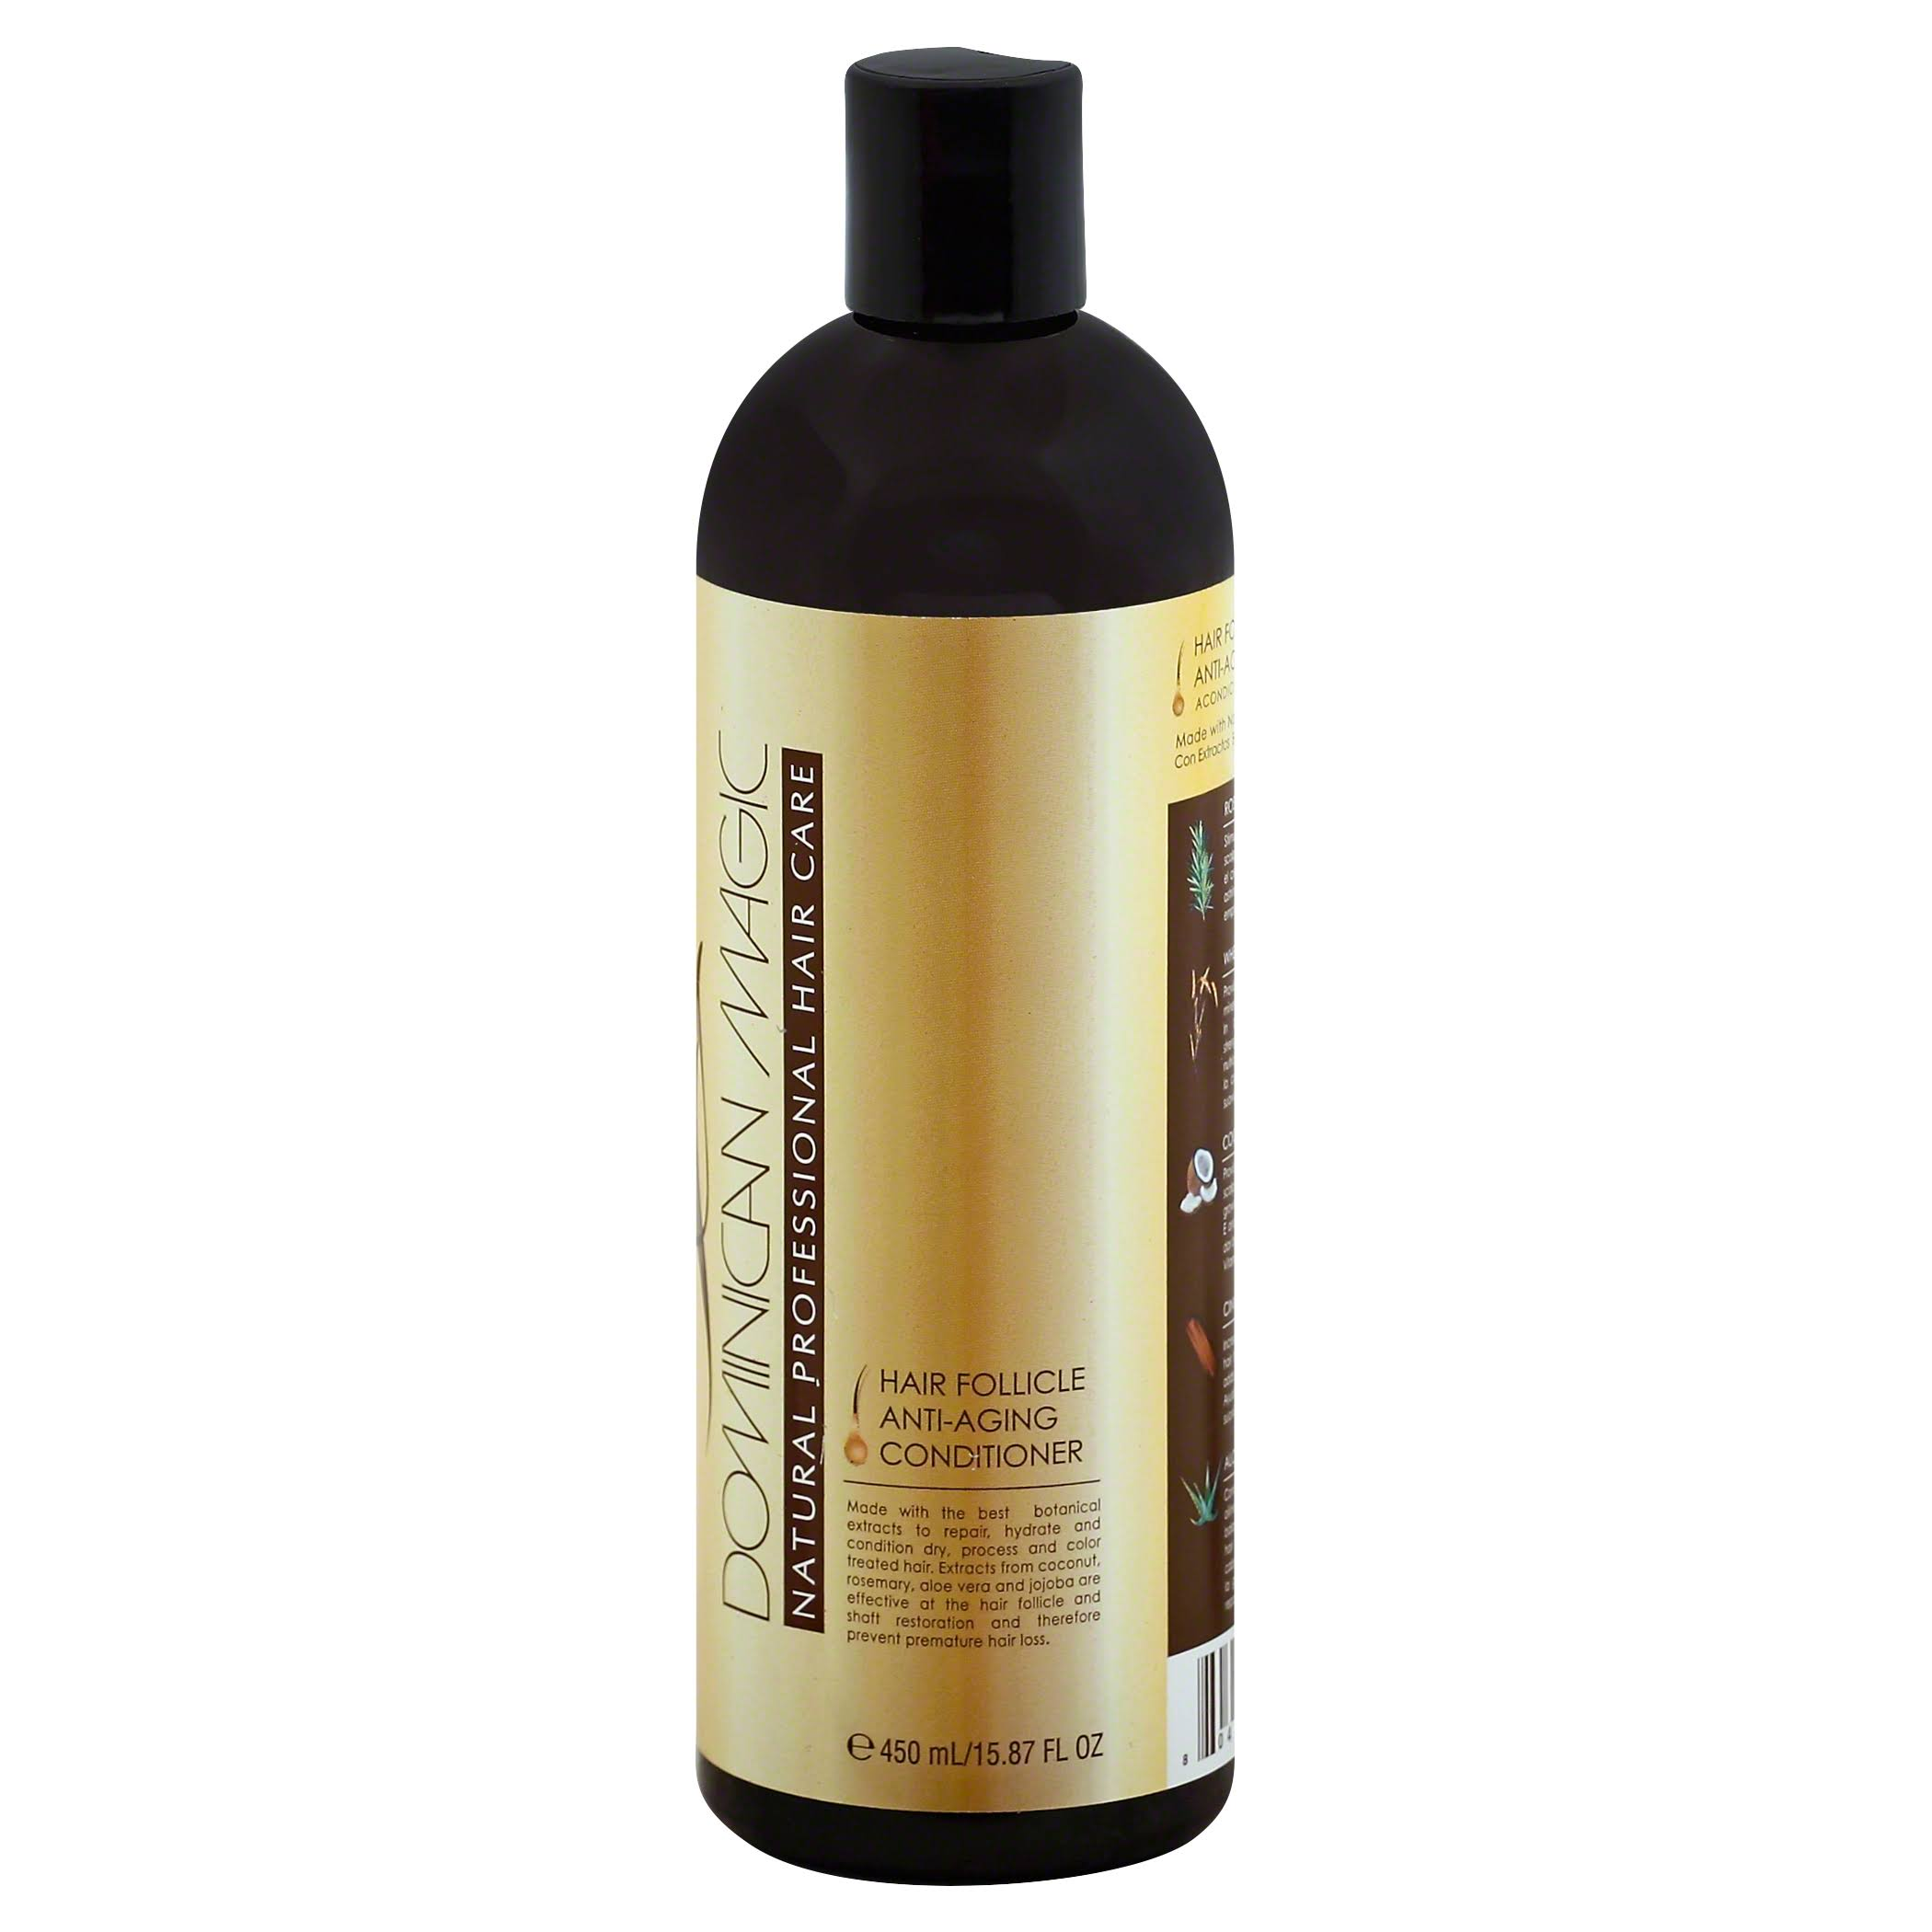 Dominican Magic Natural Professional Hair Care Conditioner, Hair Follicle, Anti-Aging - 15.87 fl oz